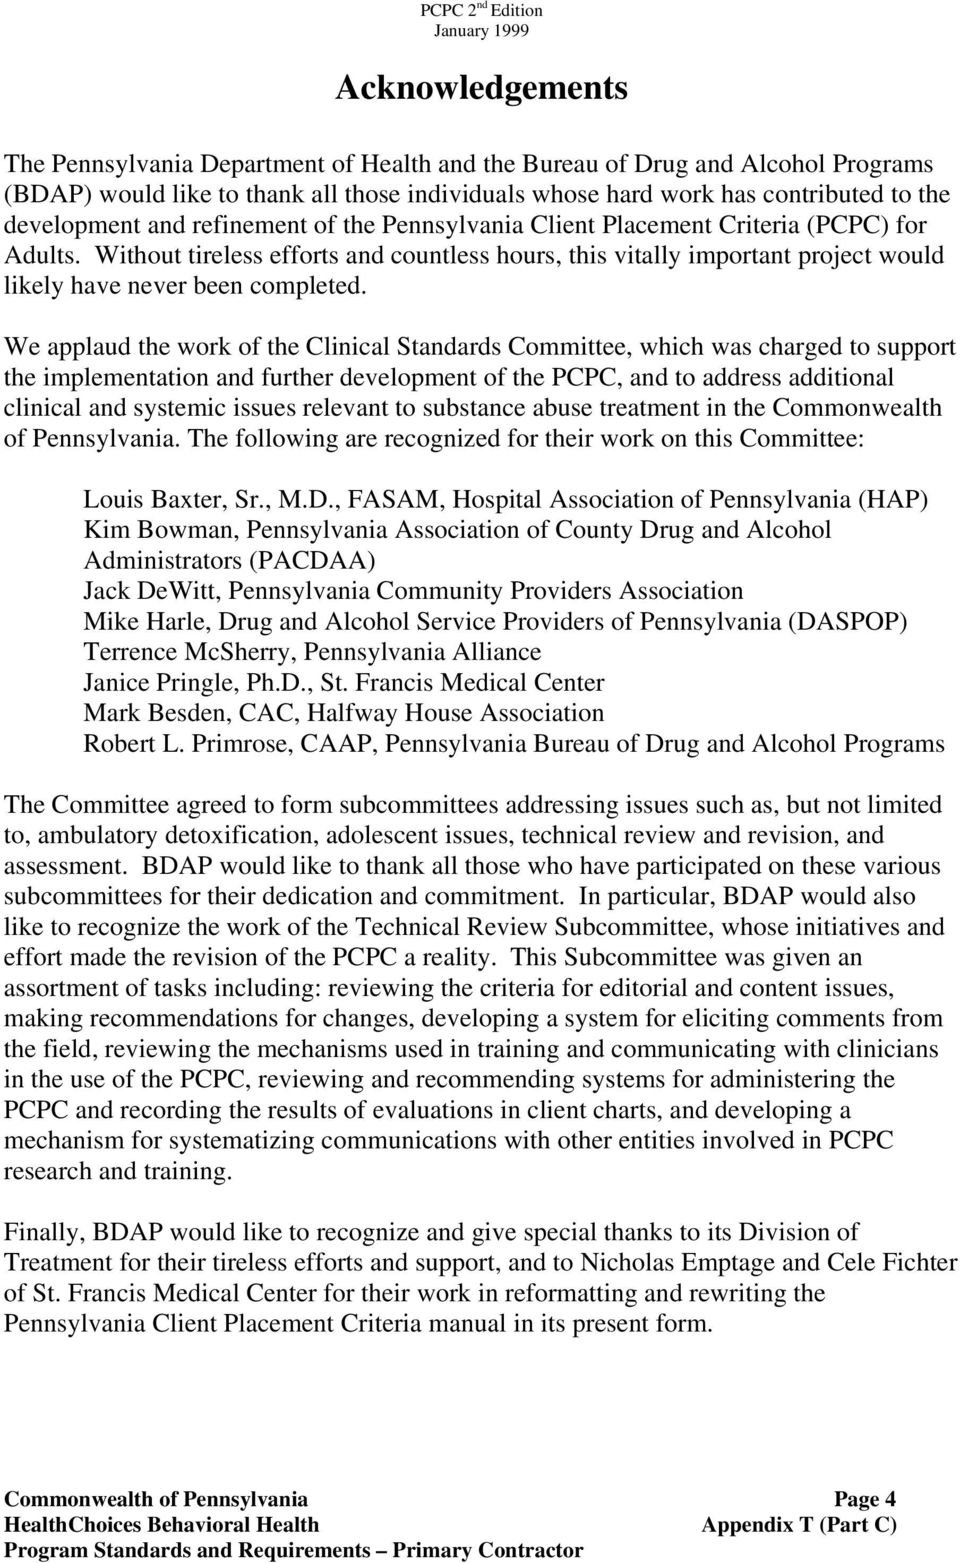 We applaud the work of the Clinical Standards Committee, which was charged to support the implementation and further development of the PCPC, and to address additional clinical and systemic issues